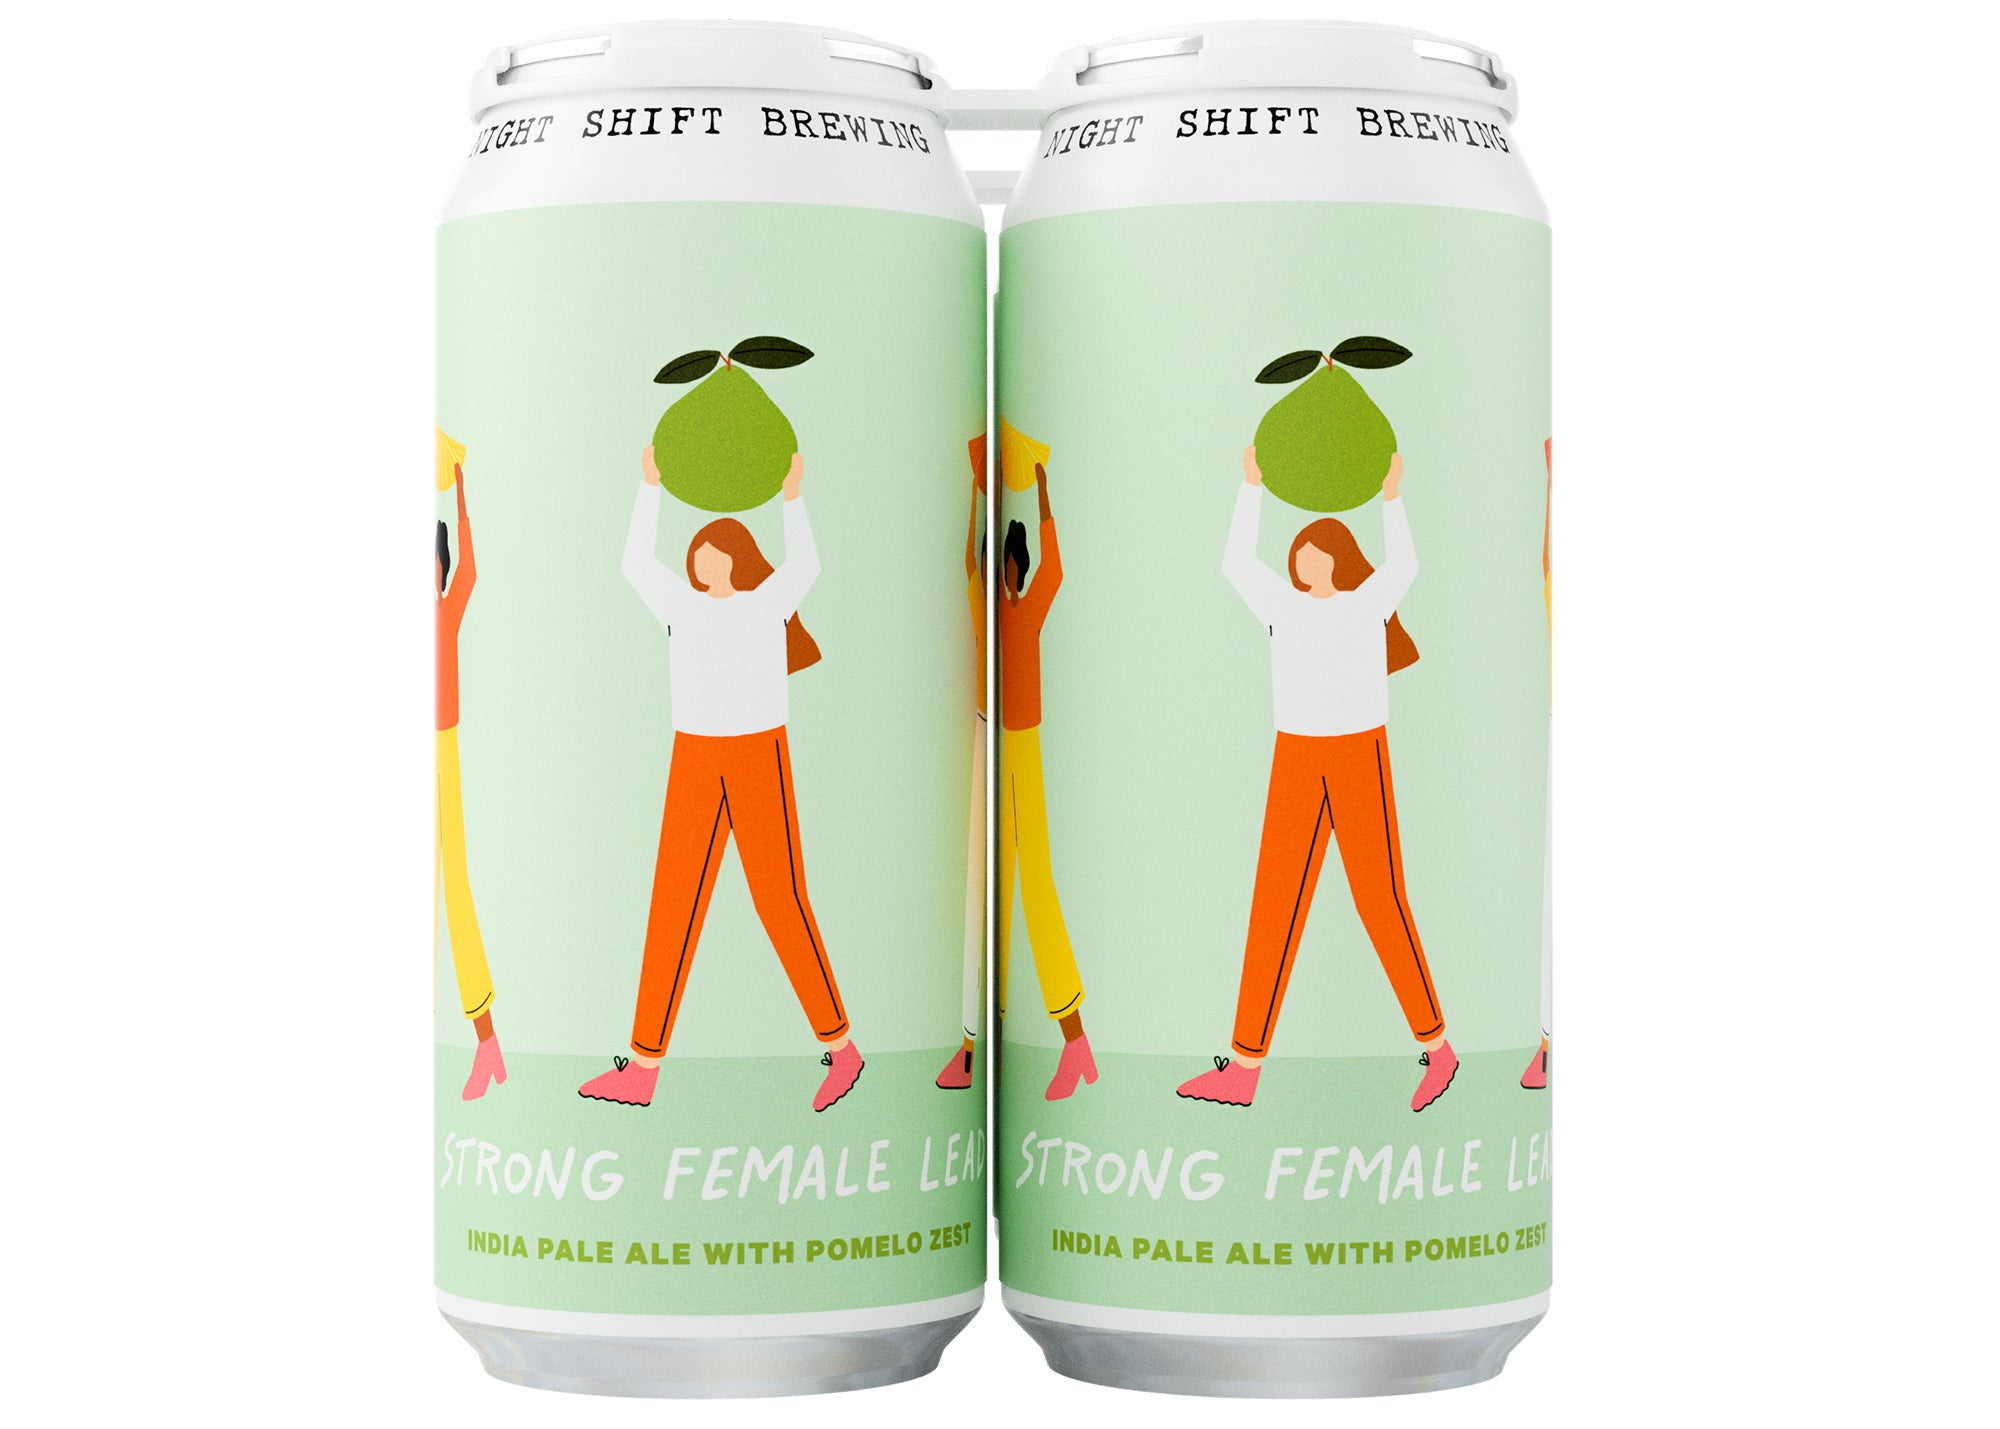 Strong Female Lead from Night Shift Brewing